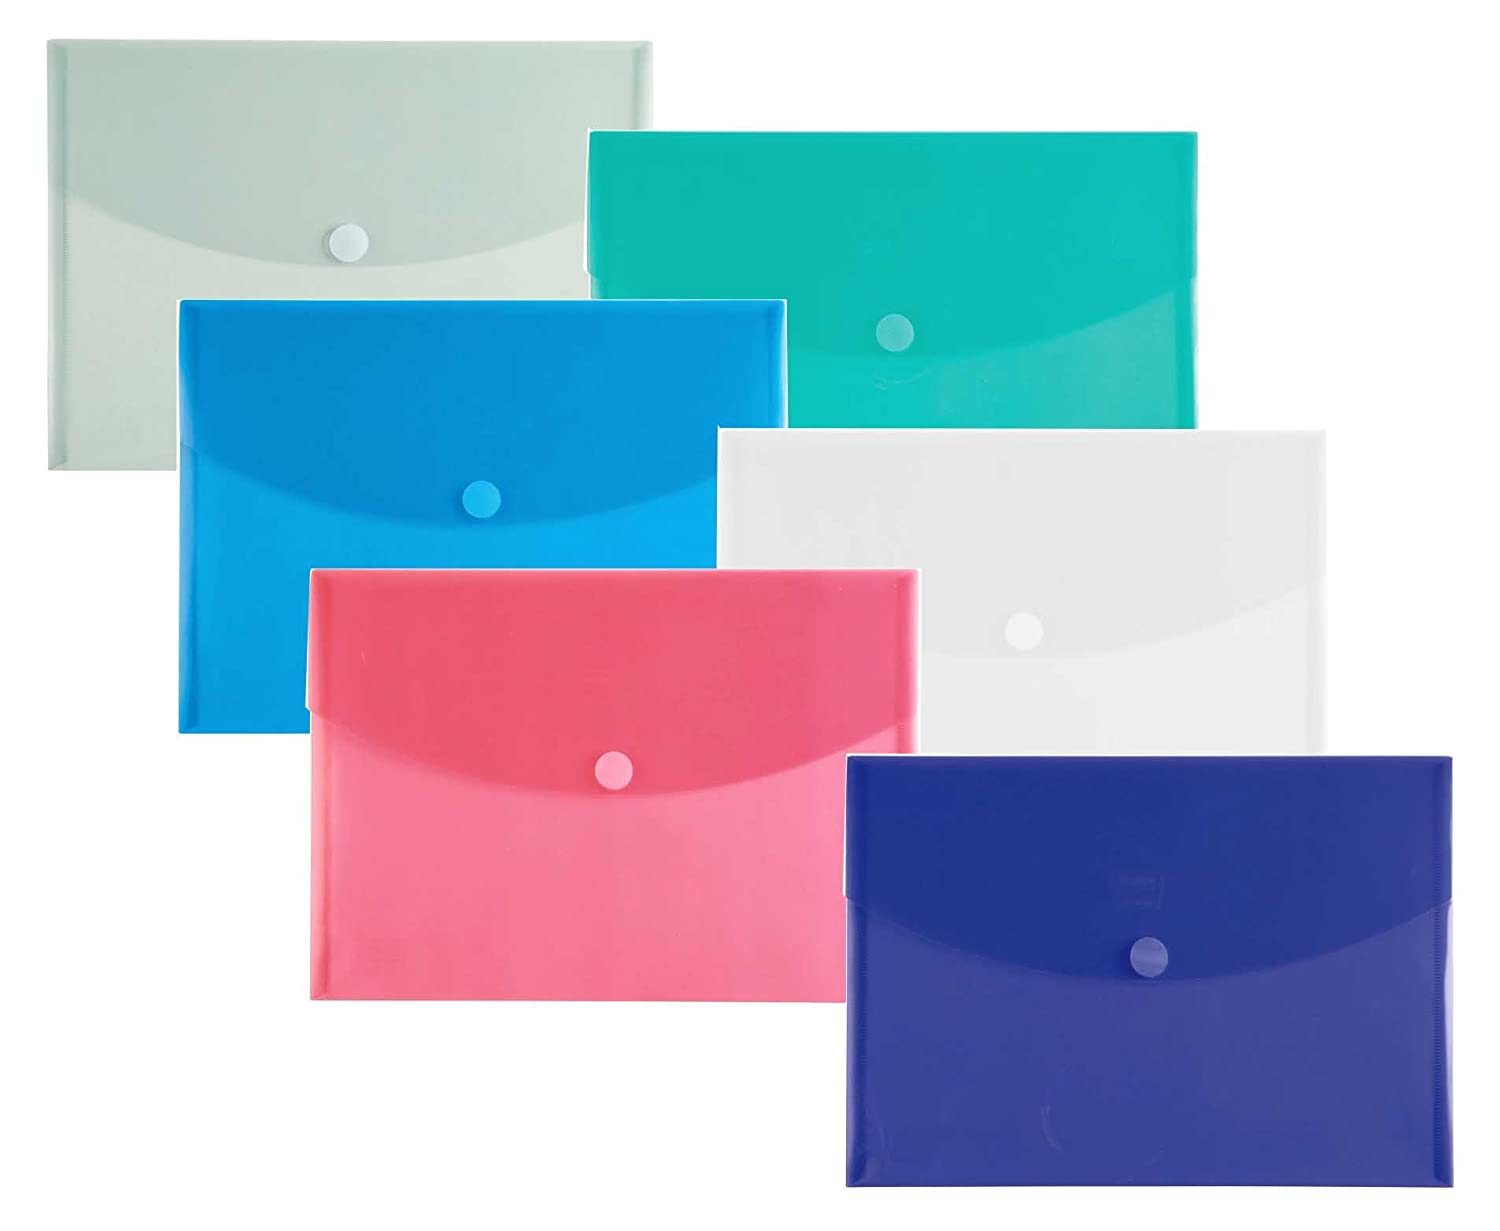 Filexec 1720, Poly Envelope, Velcro Closure, Letter Size, Set of 12 in 6 Assorted Colors, 2 Each Smoke, Blue, Red, Clear, Purple, Green Rim Pacific Inc. 50037-1720